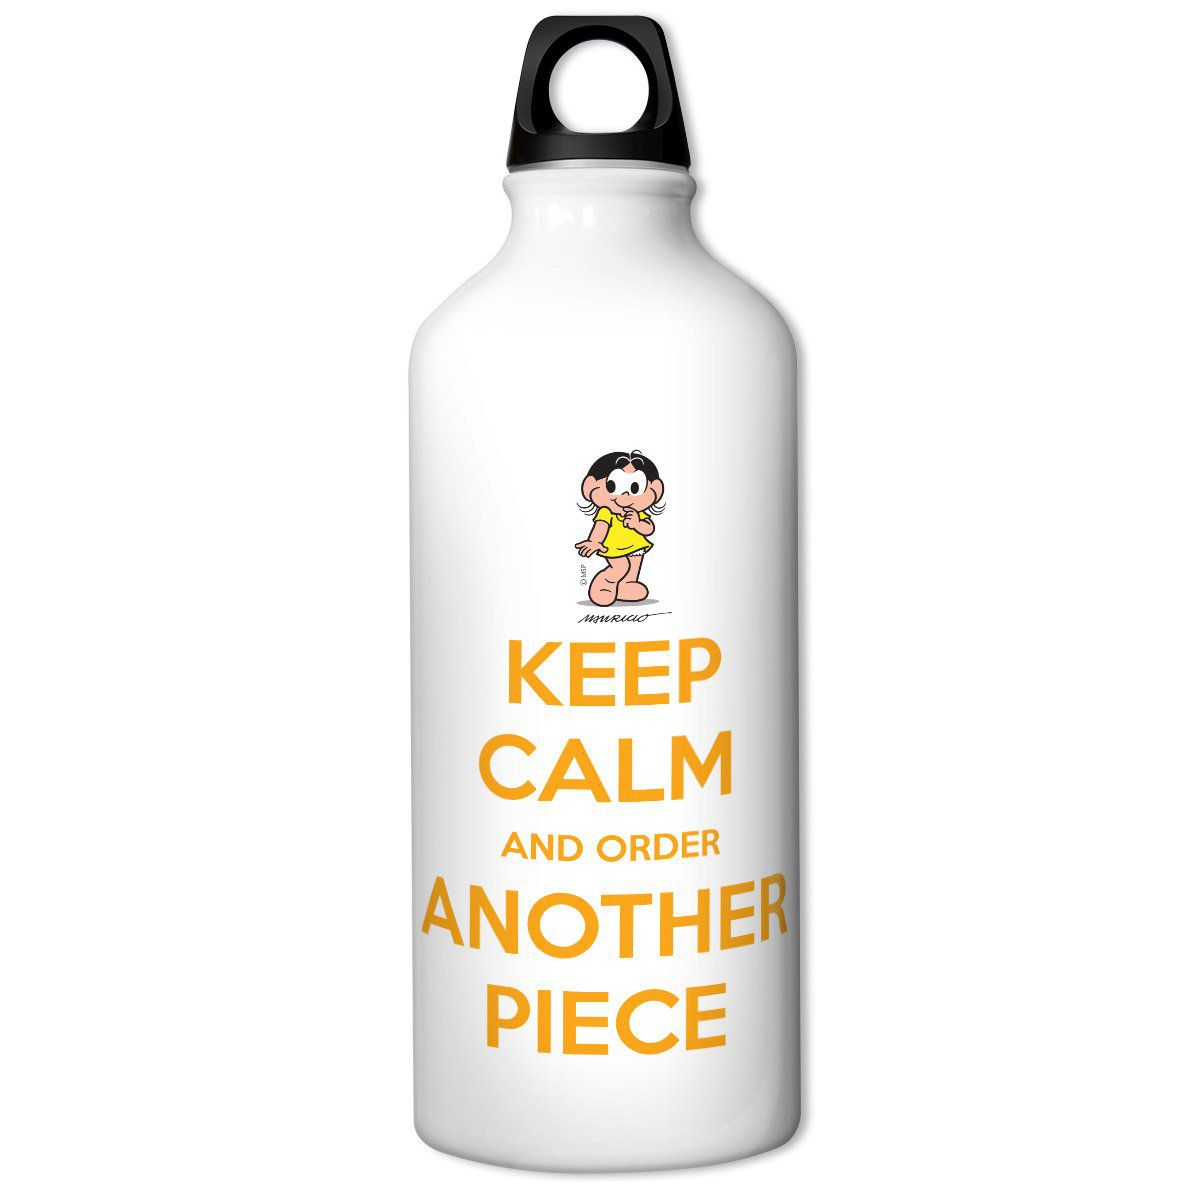 Squeeze Turma da Mônica Cool - Keep Calm And Order Another Piece